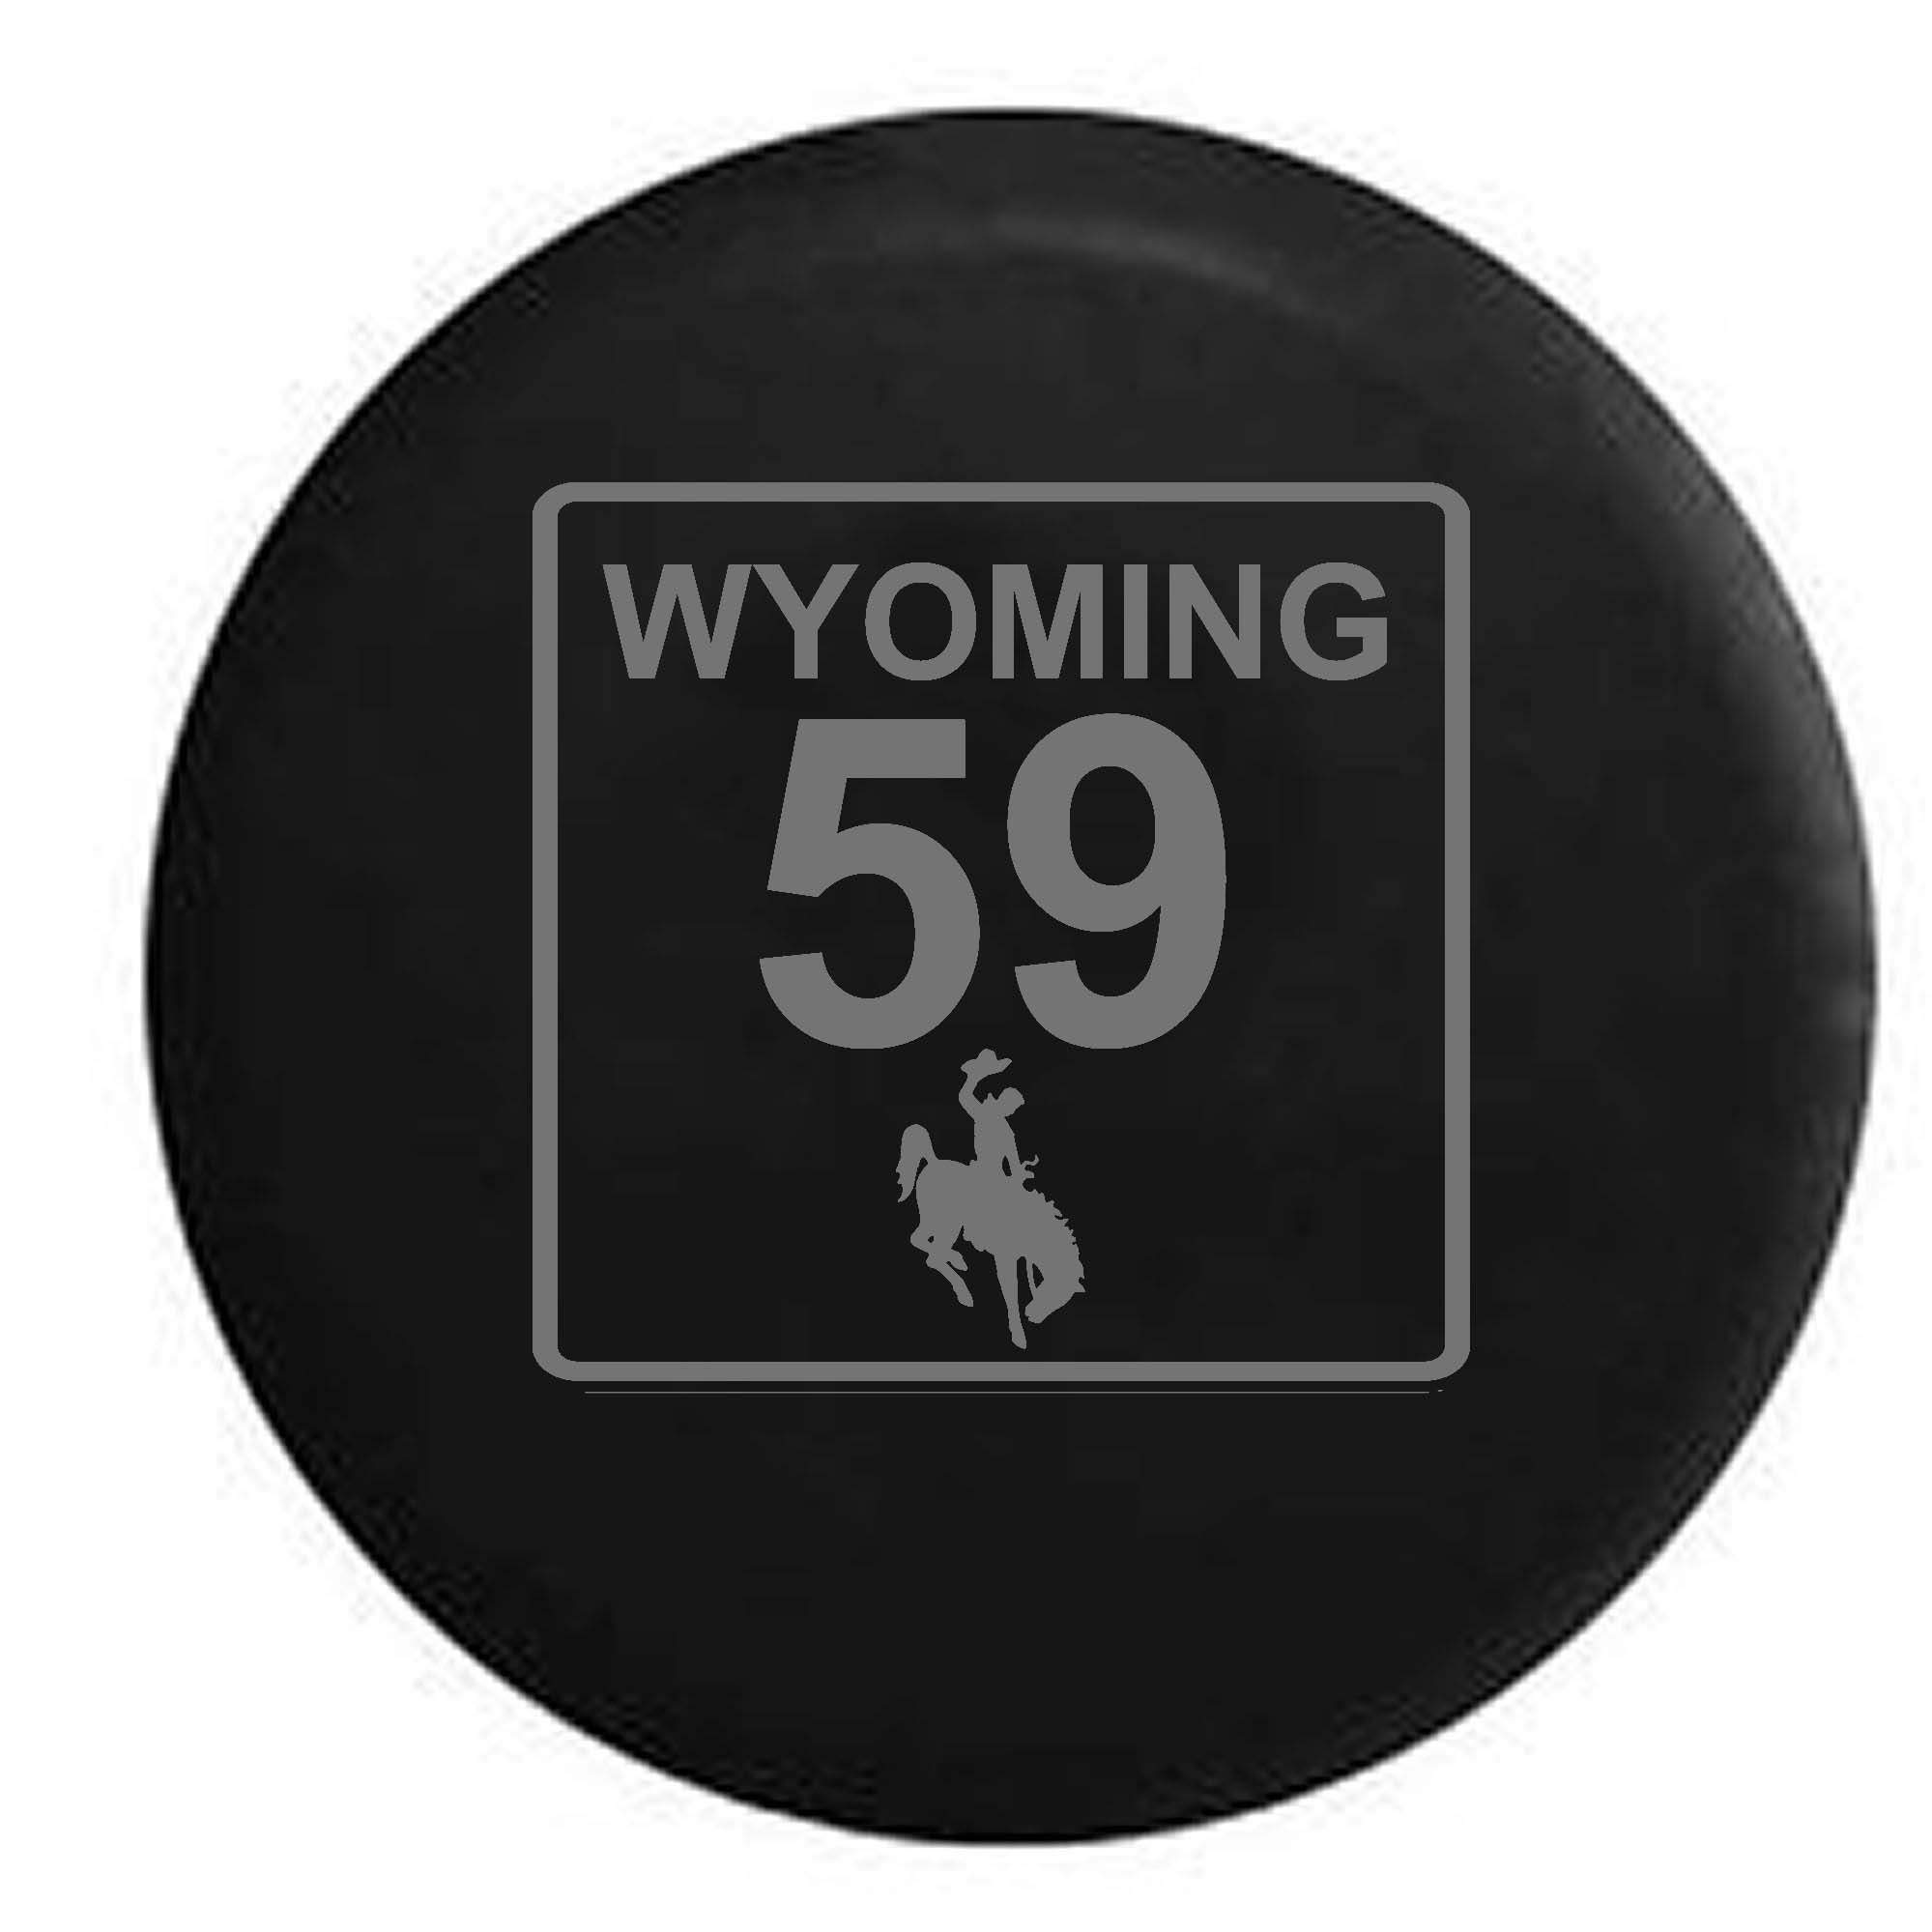 Wyoming State Route Highway 59 Cowboy Scenic Road Sign Spare Tire Cover Vinyl Stealth Black 31 in